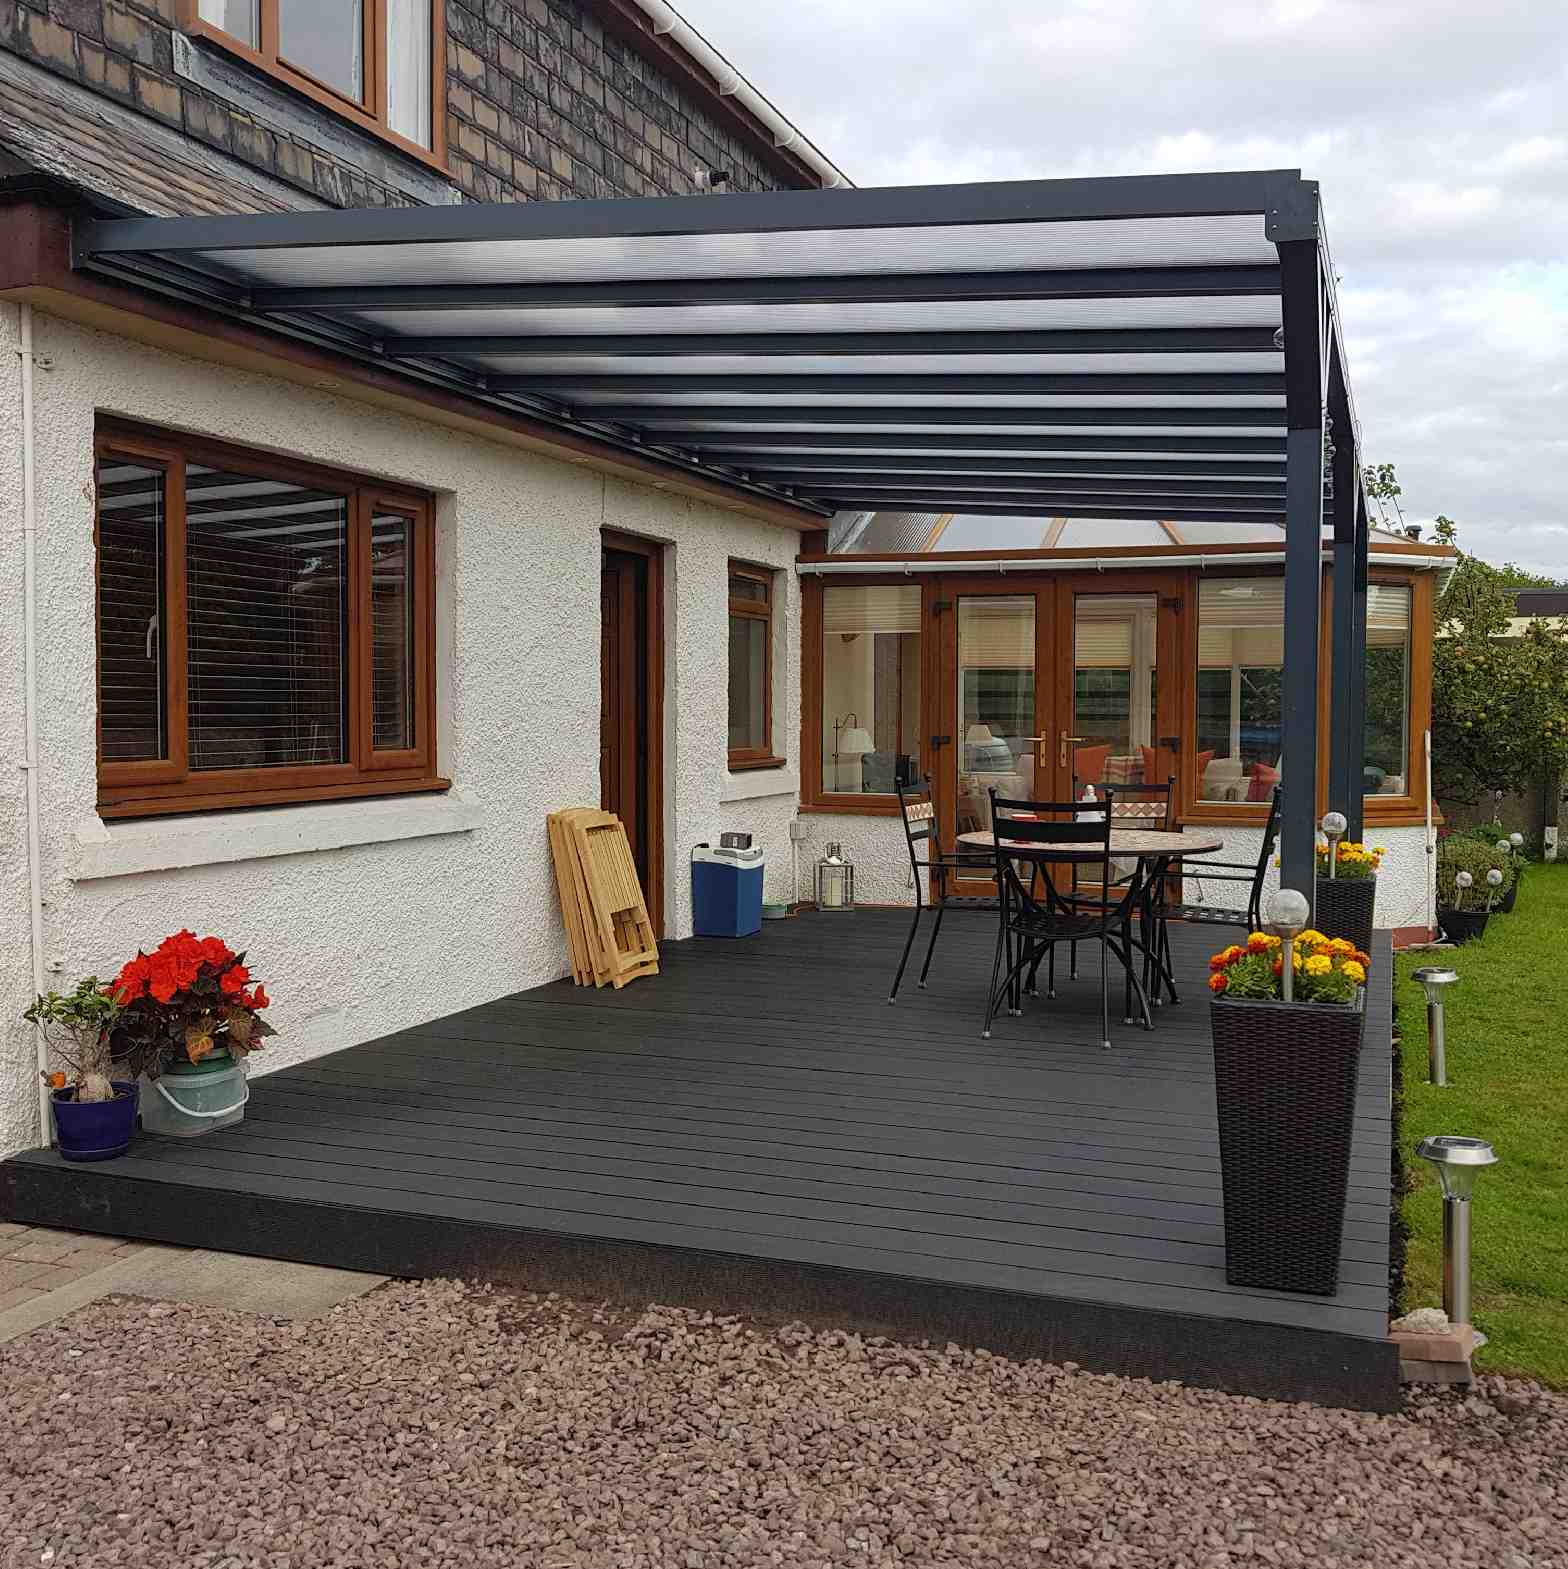 Buy Omega Verandah, Anthracite Grey, 6mm Glass Clear Plate Polycarbonate Glazing - 2.1m (W) x 3.0m (P), (2) Supporting Posts online today